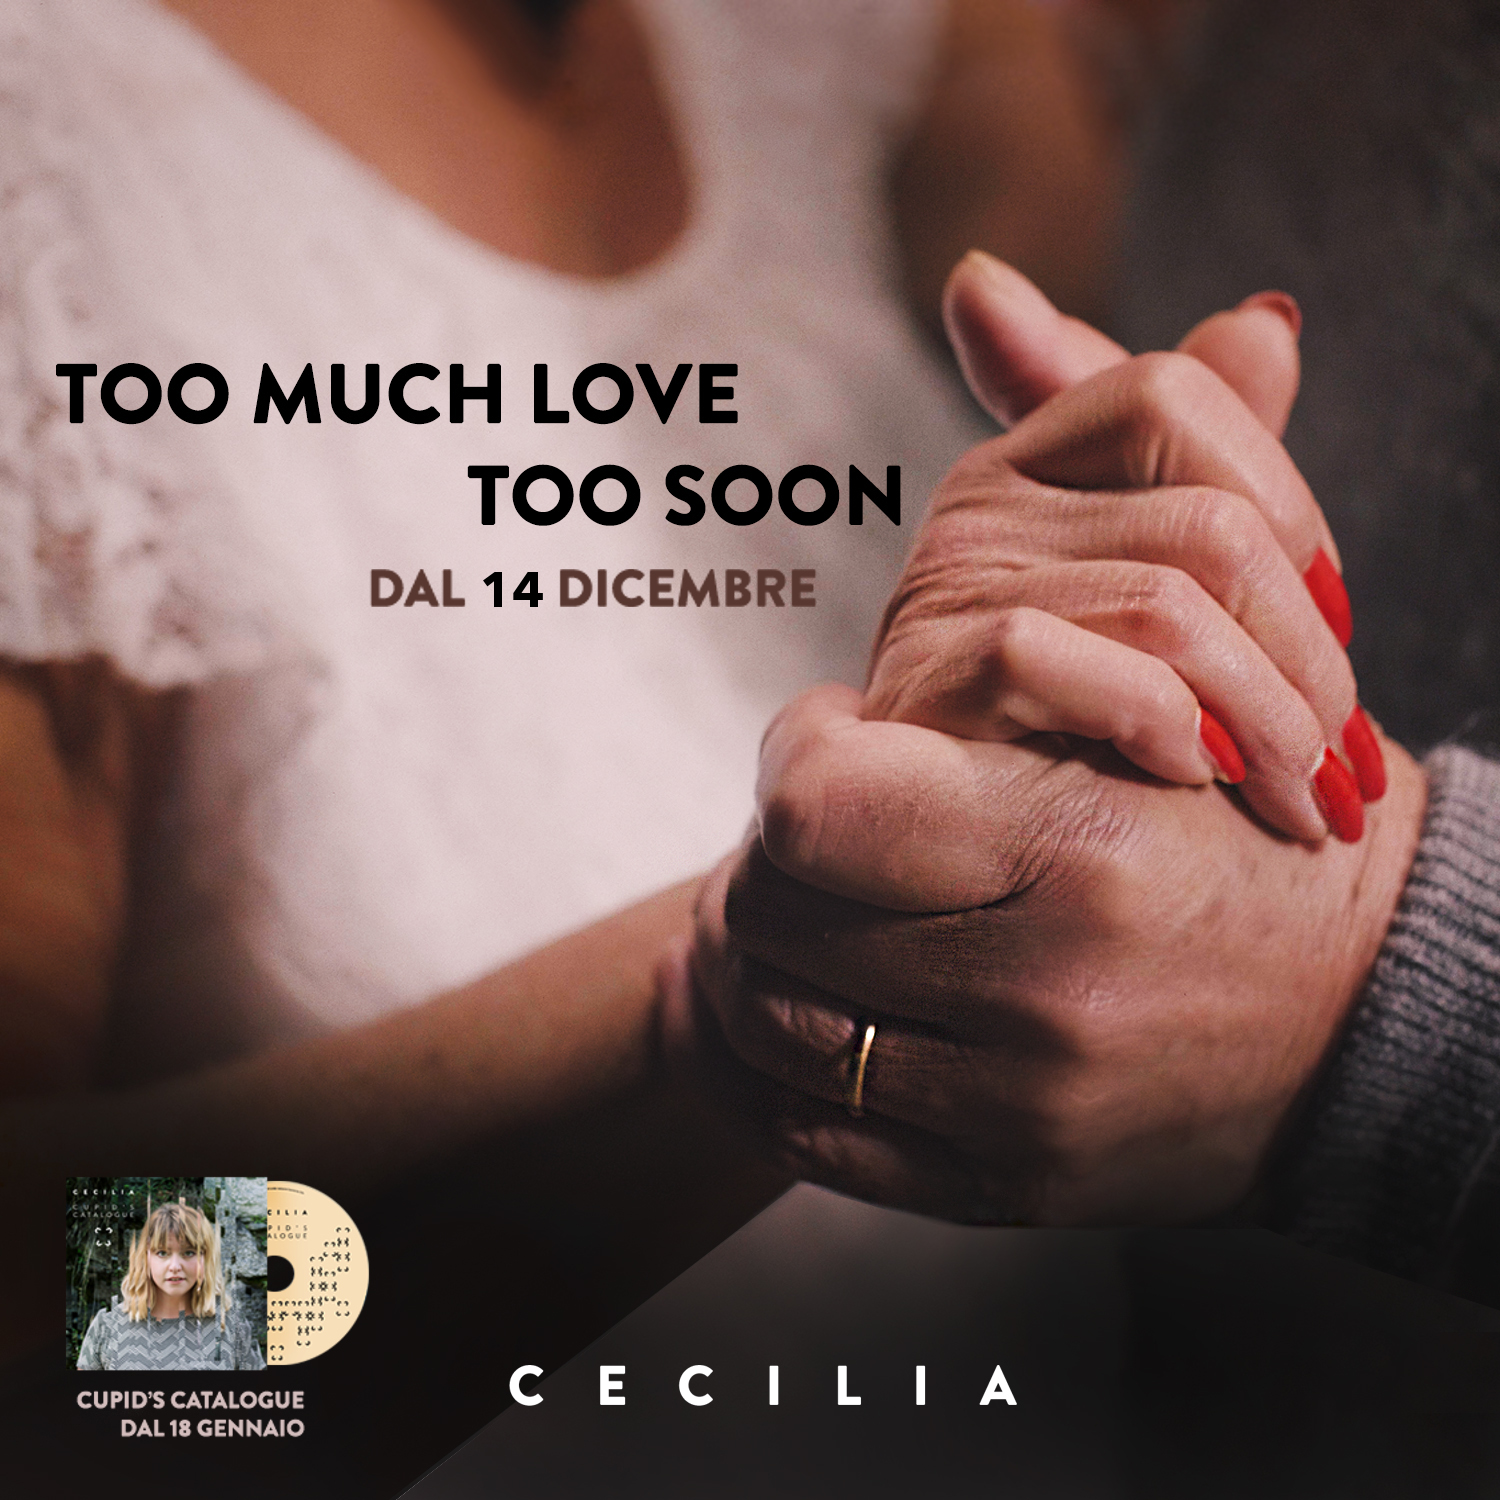 cecilia too much love too soon